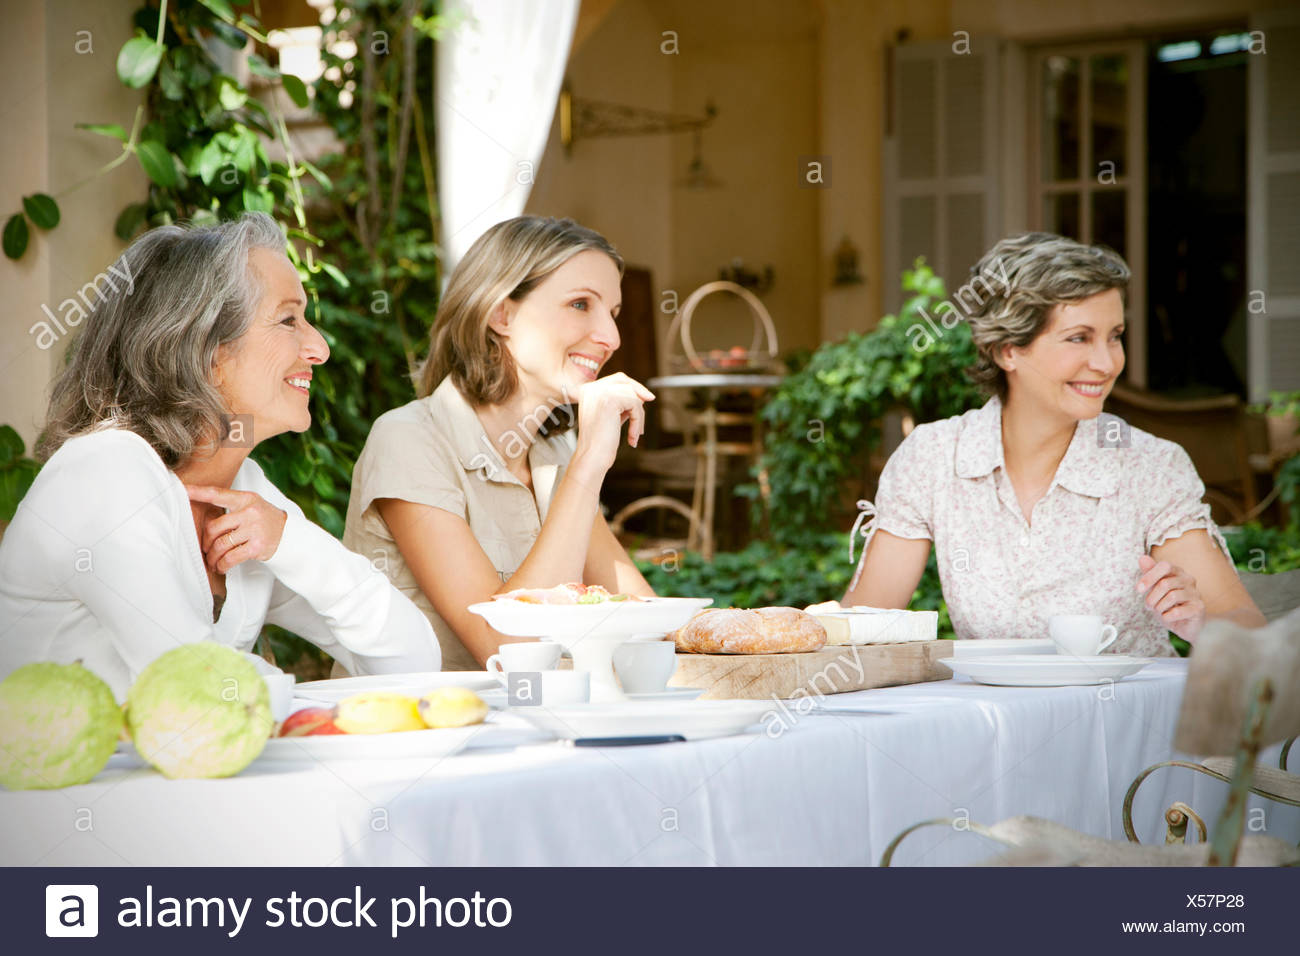 Spain, Mallorca, three female friends sitting at laid table in the garden - Stock Image